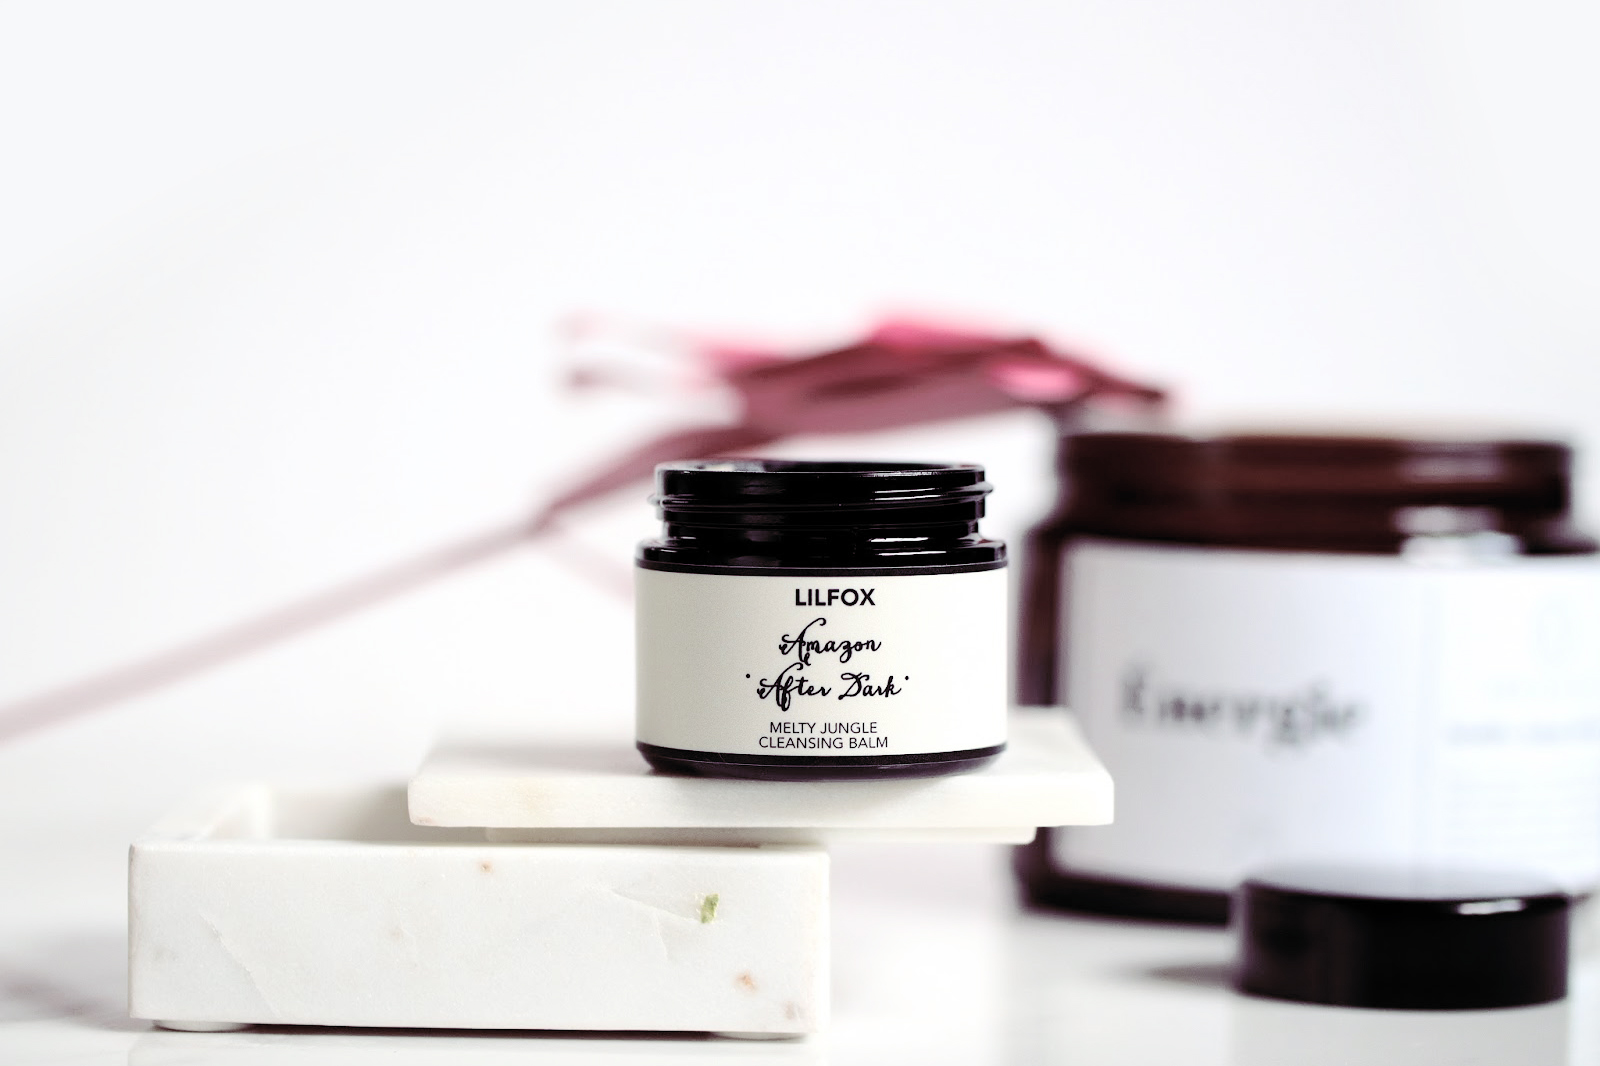 lilfox amazon after dark melty jungle cleansing balm baume démaquillant avis test